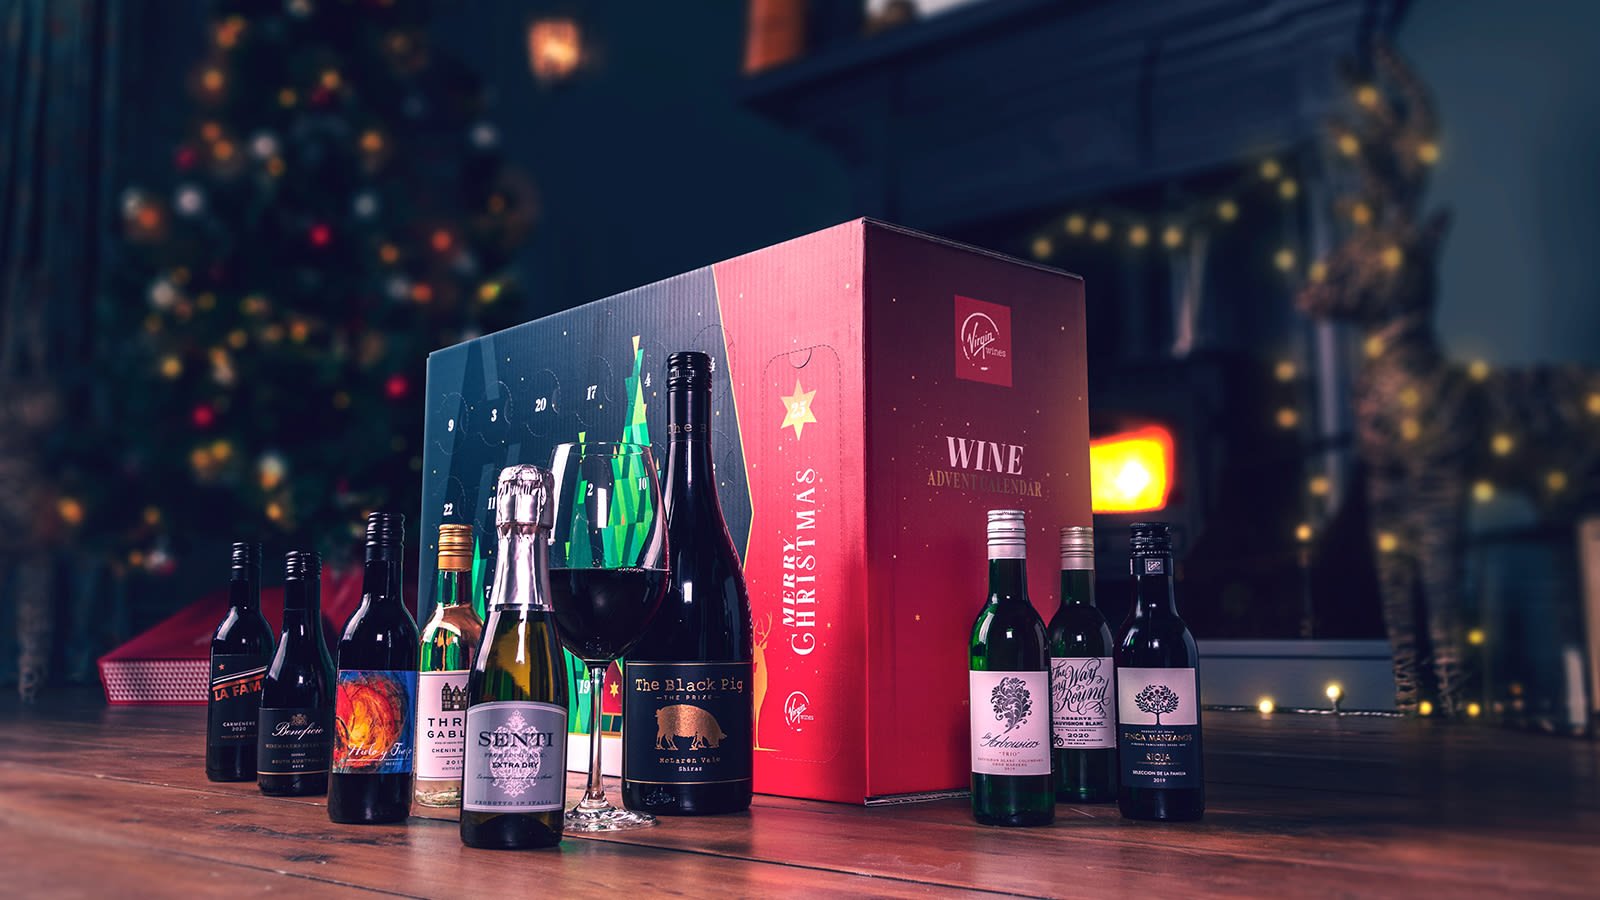 A Virgin Wines advent calendar with seven small bottles of wine and one large bottle of wine